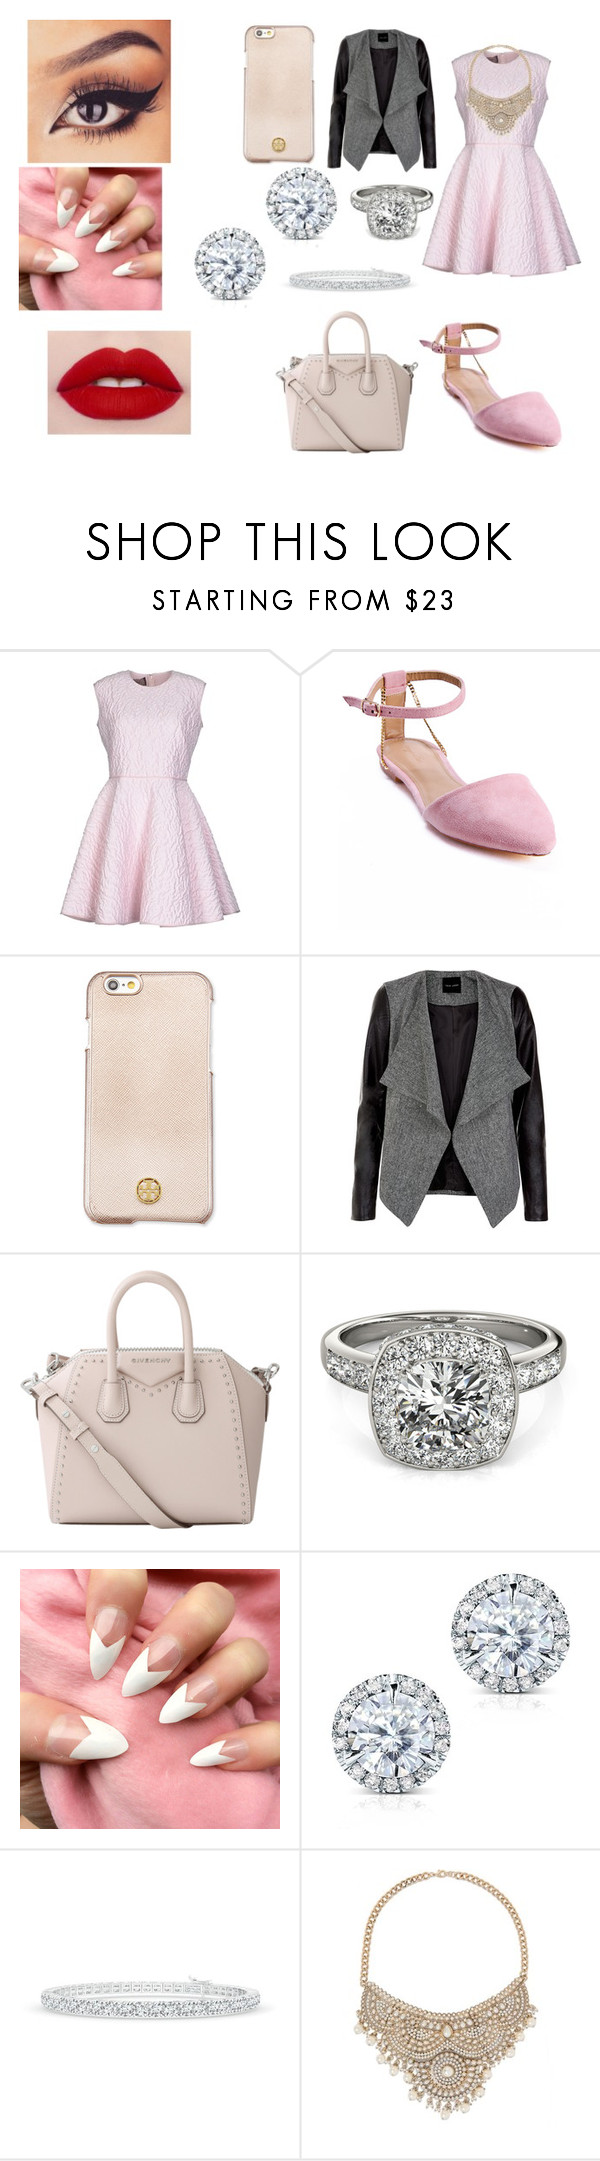 """little to girly"" by meadowfulcher on Polyvore featuring Giambattista Valli, Sergio Bari, Tory Burch, Givenchy, Allurez, Kobelli and Bebe"